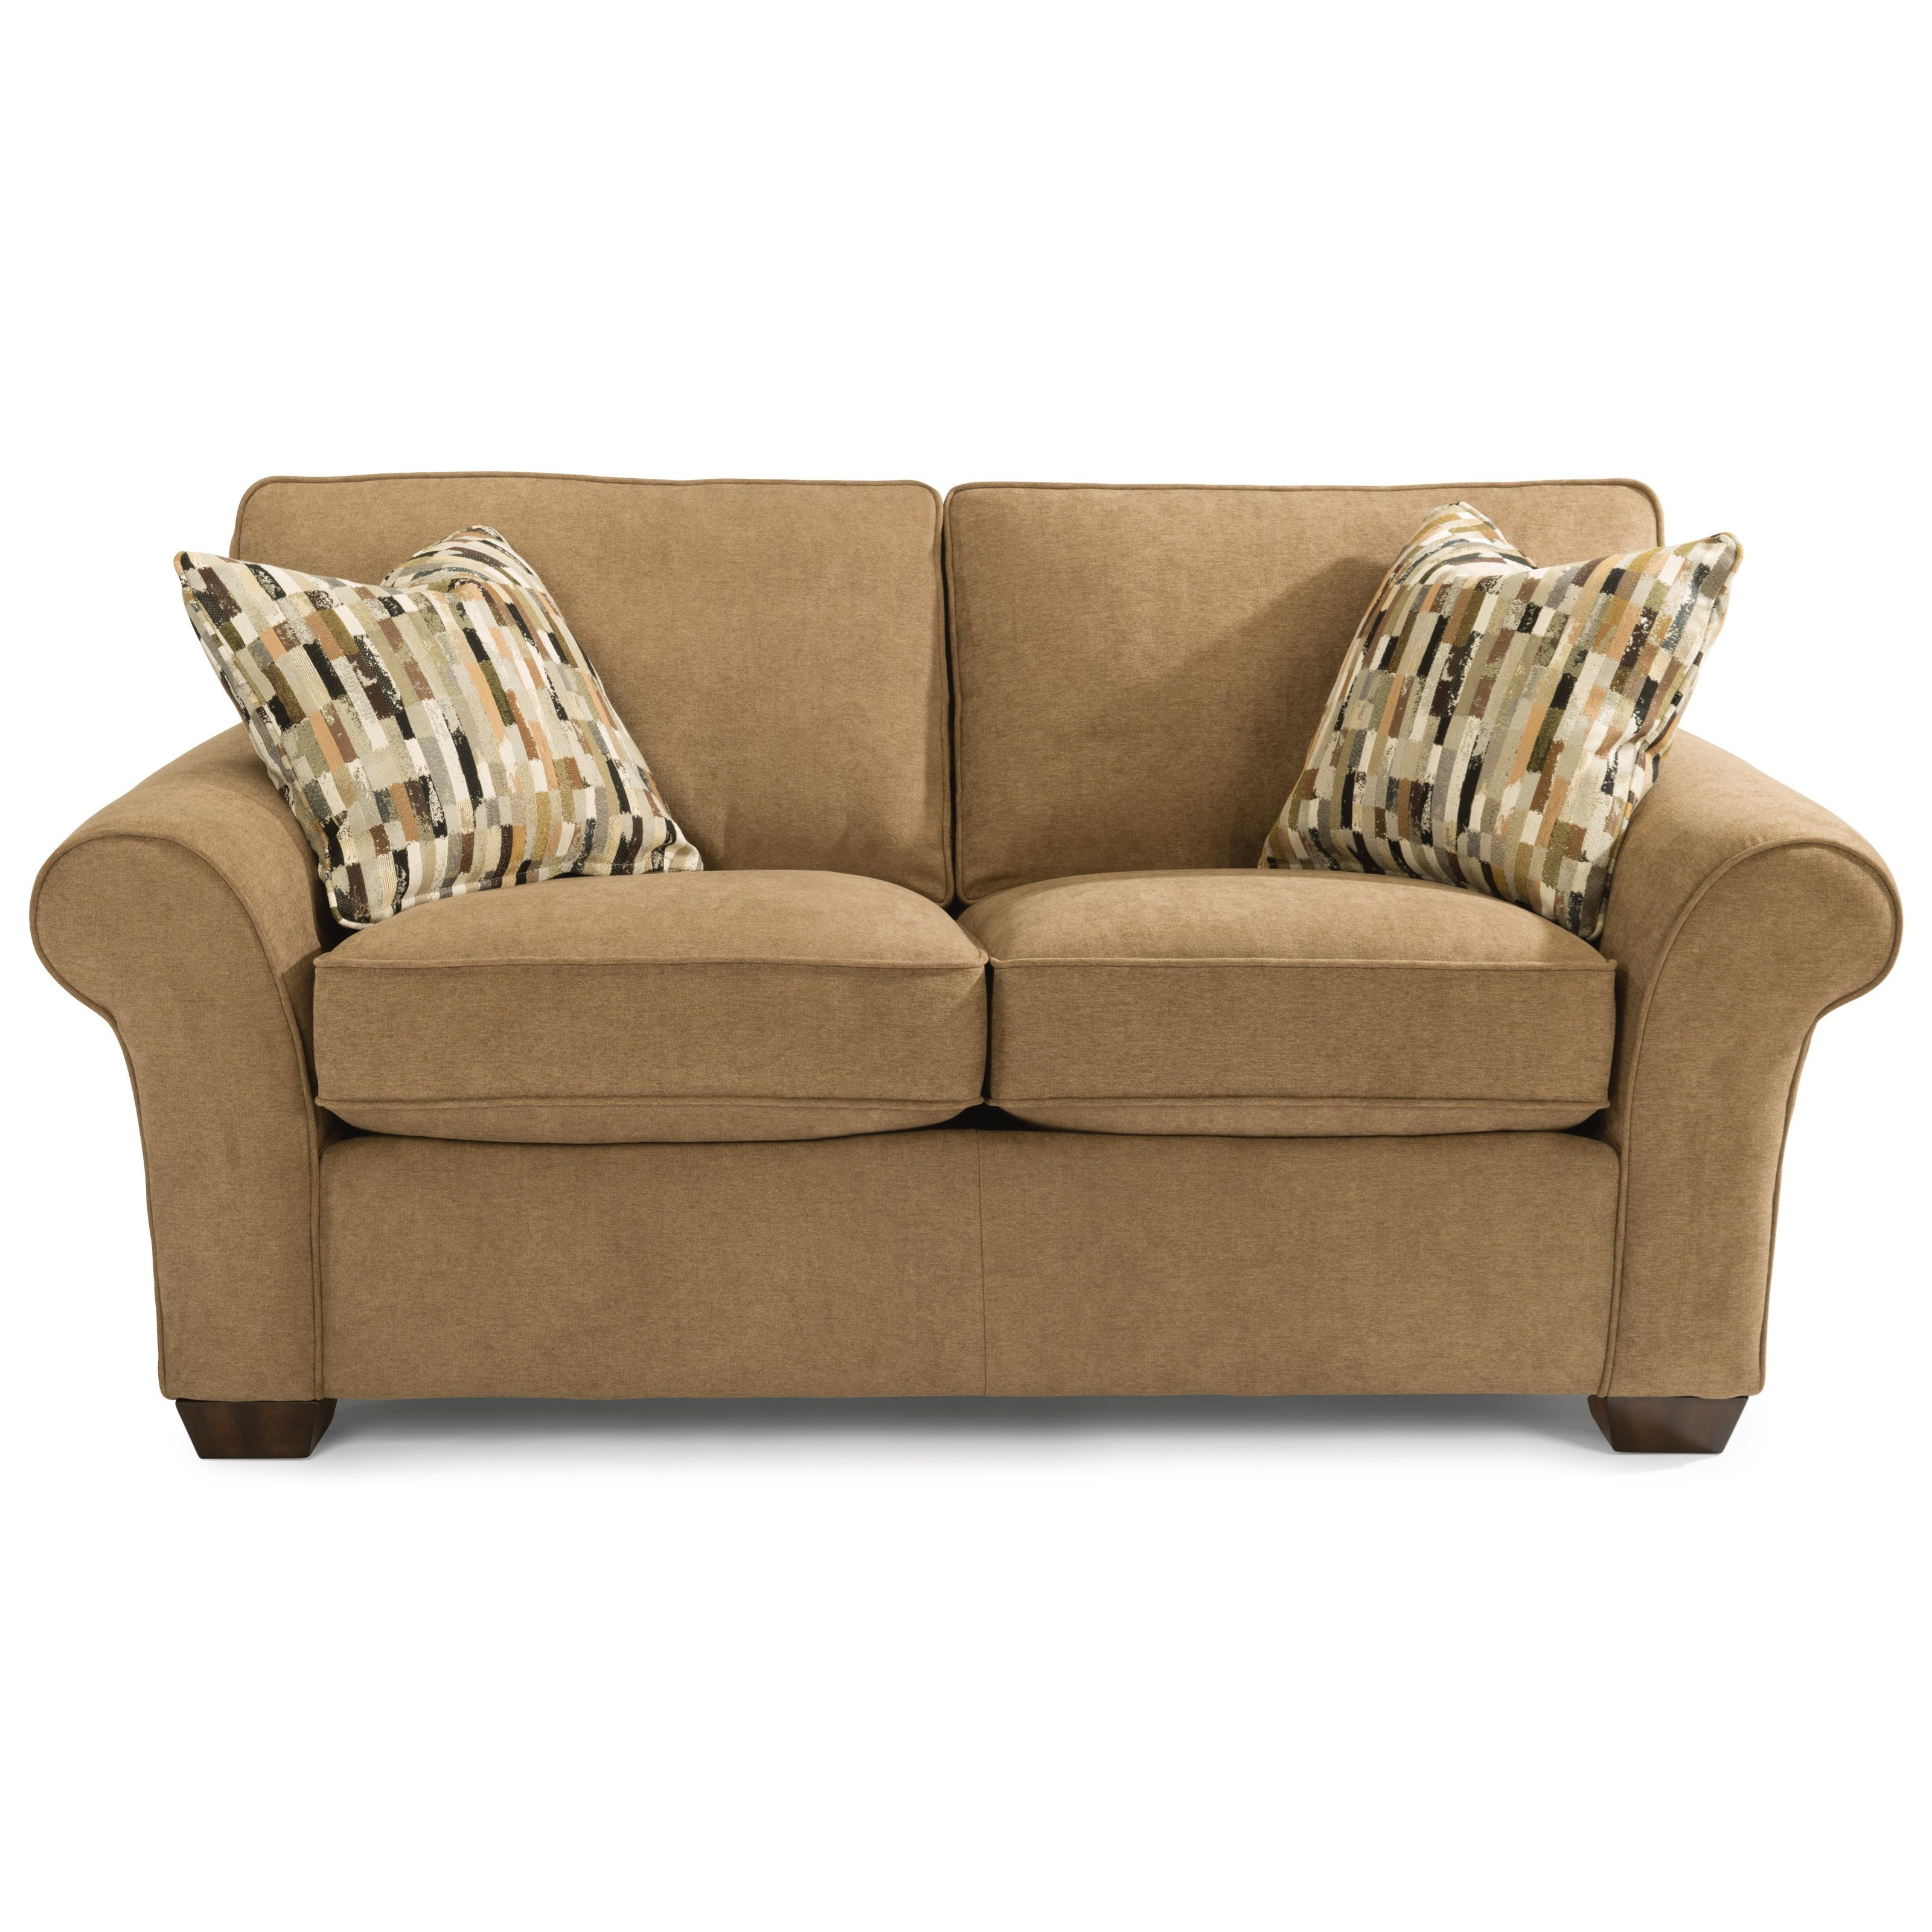 "71"" Loveseat"